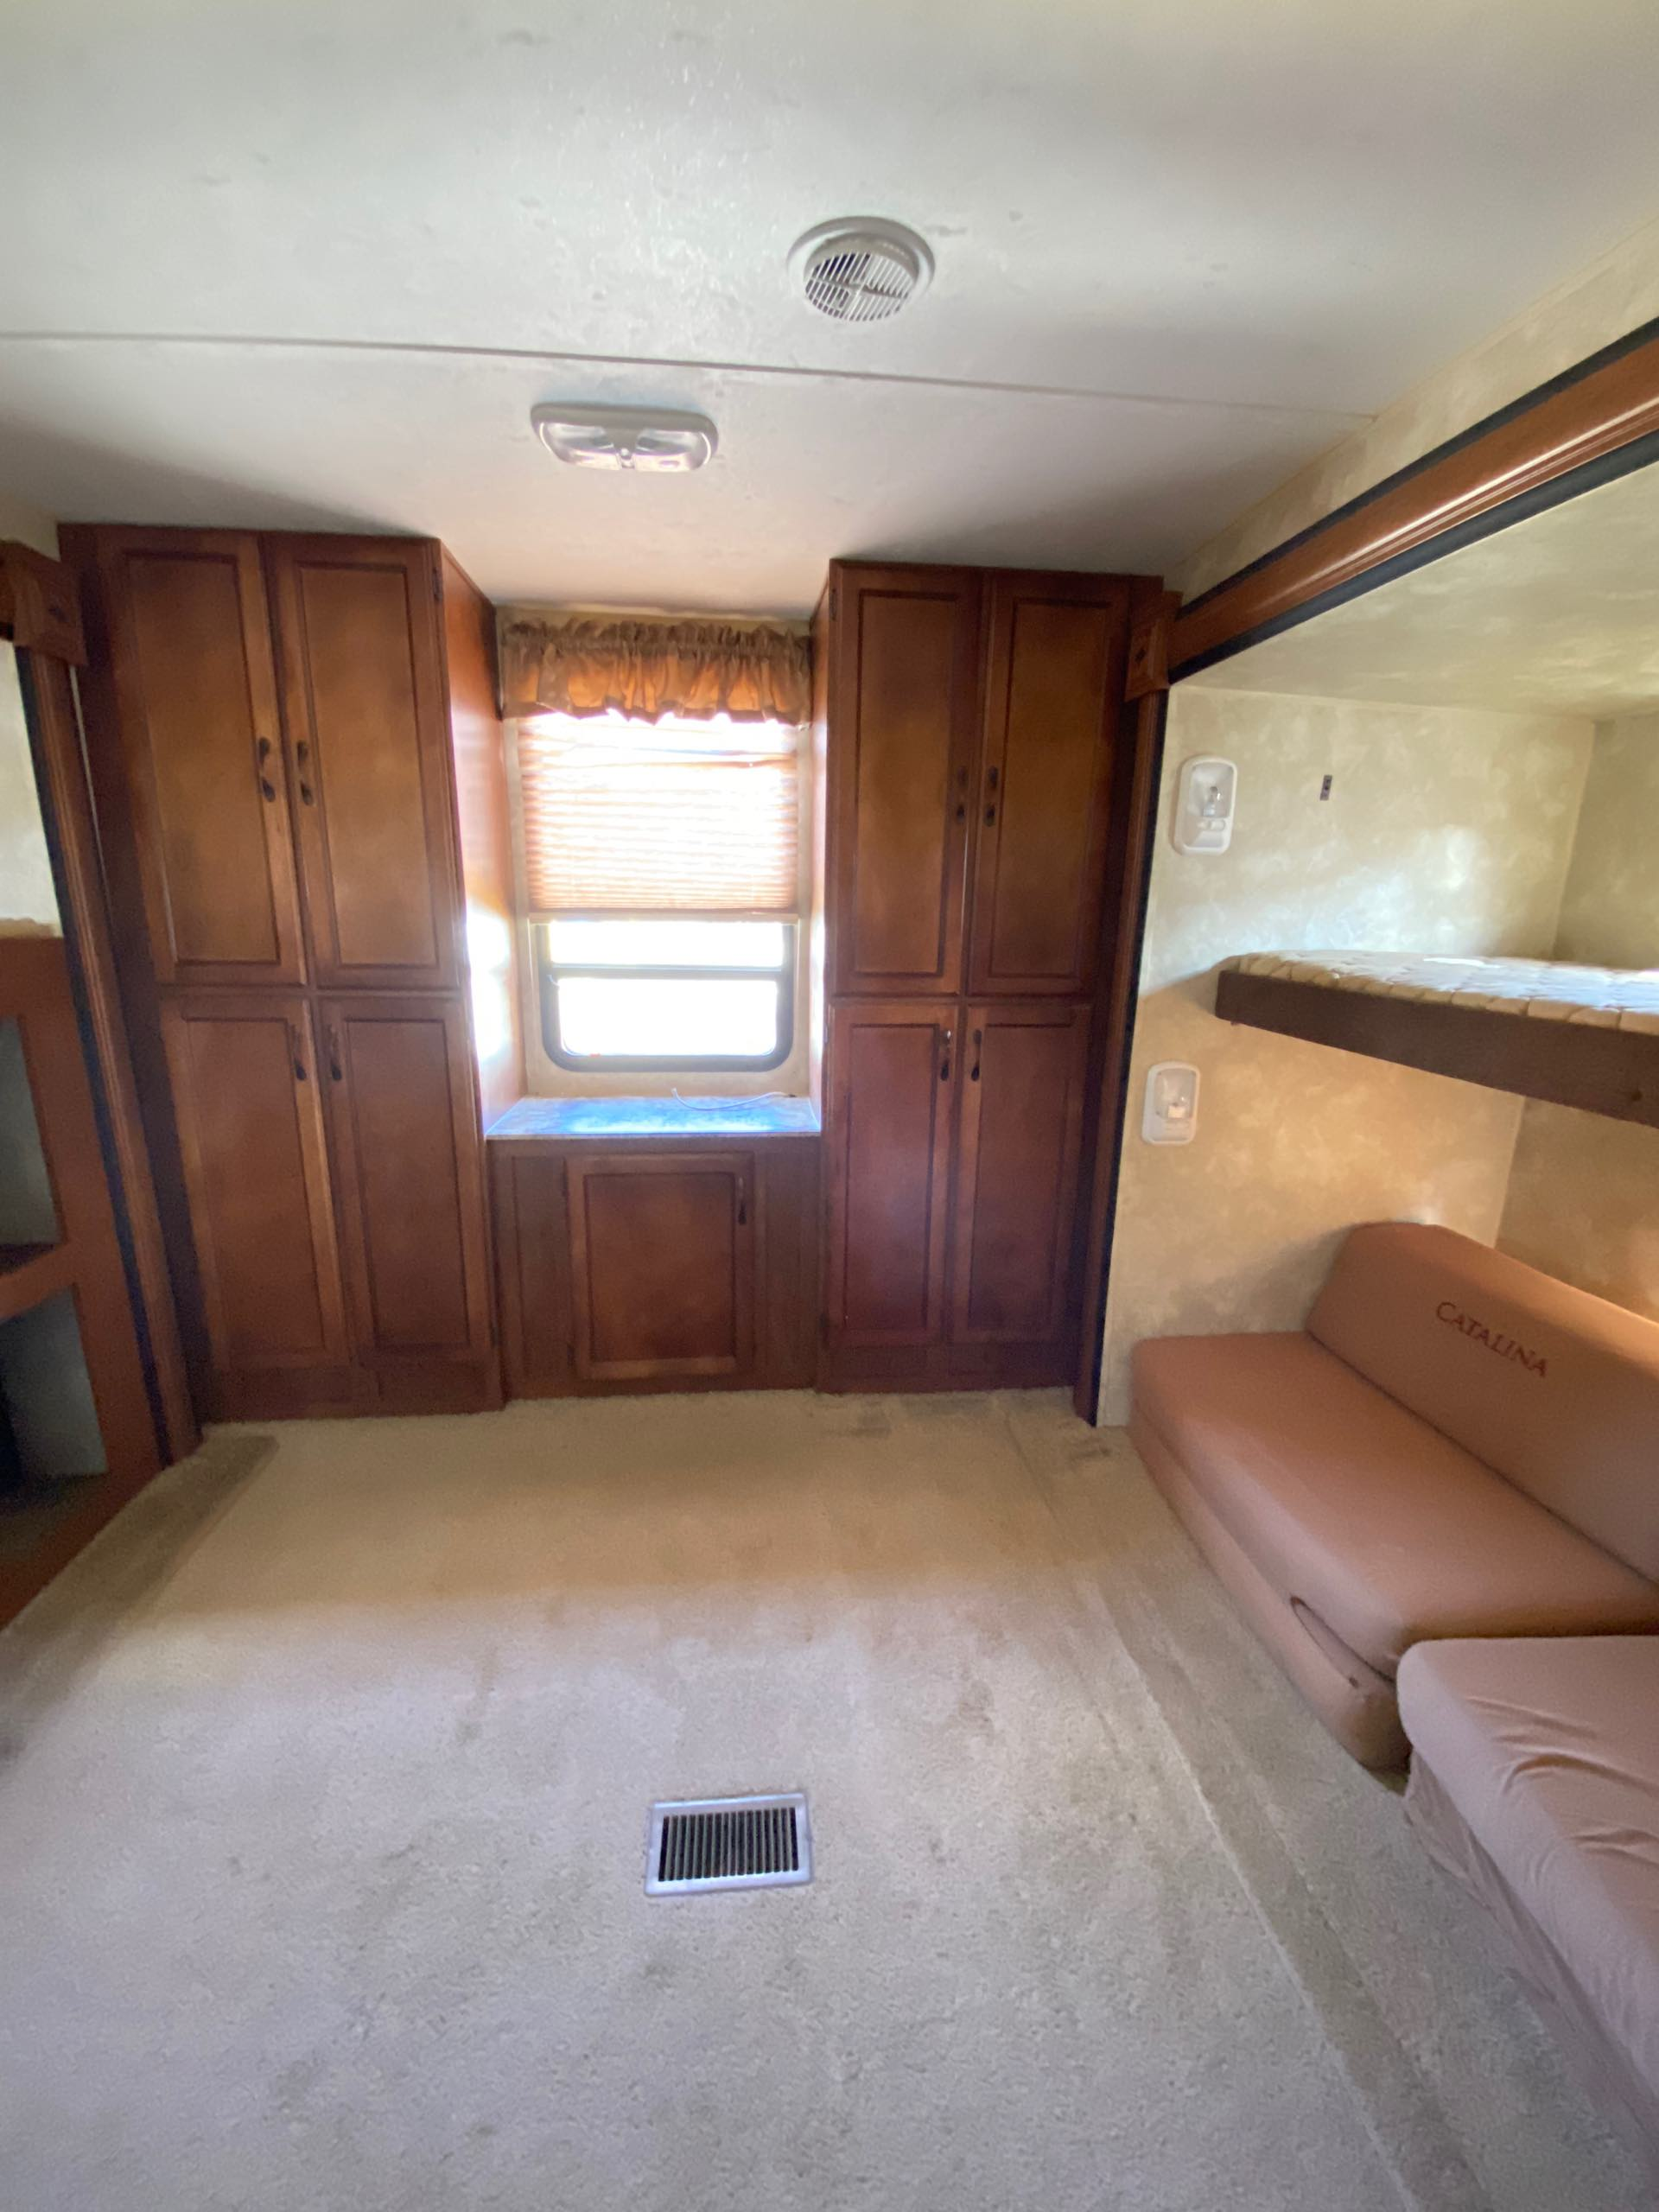 2013 Coachmen Catalina Deluxe Edition 32TSBH at Lee's Country RV